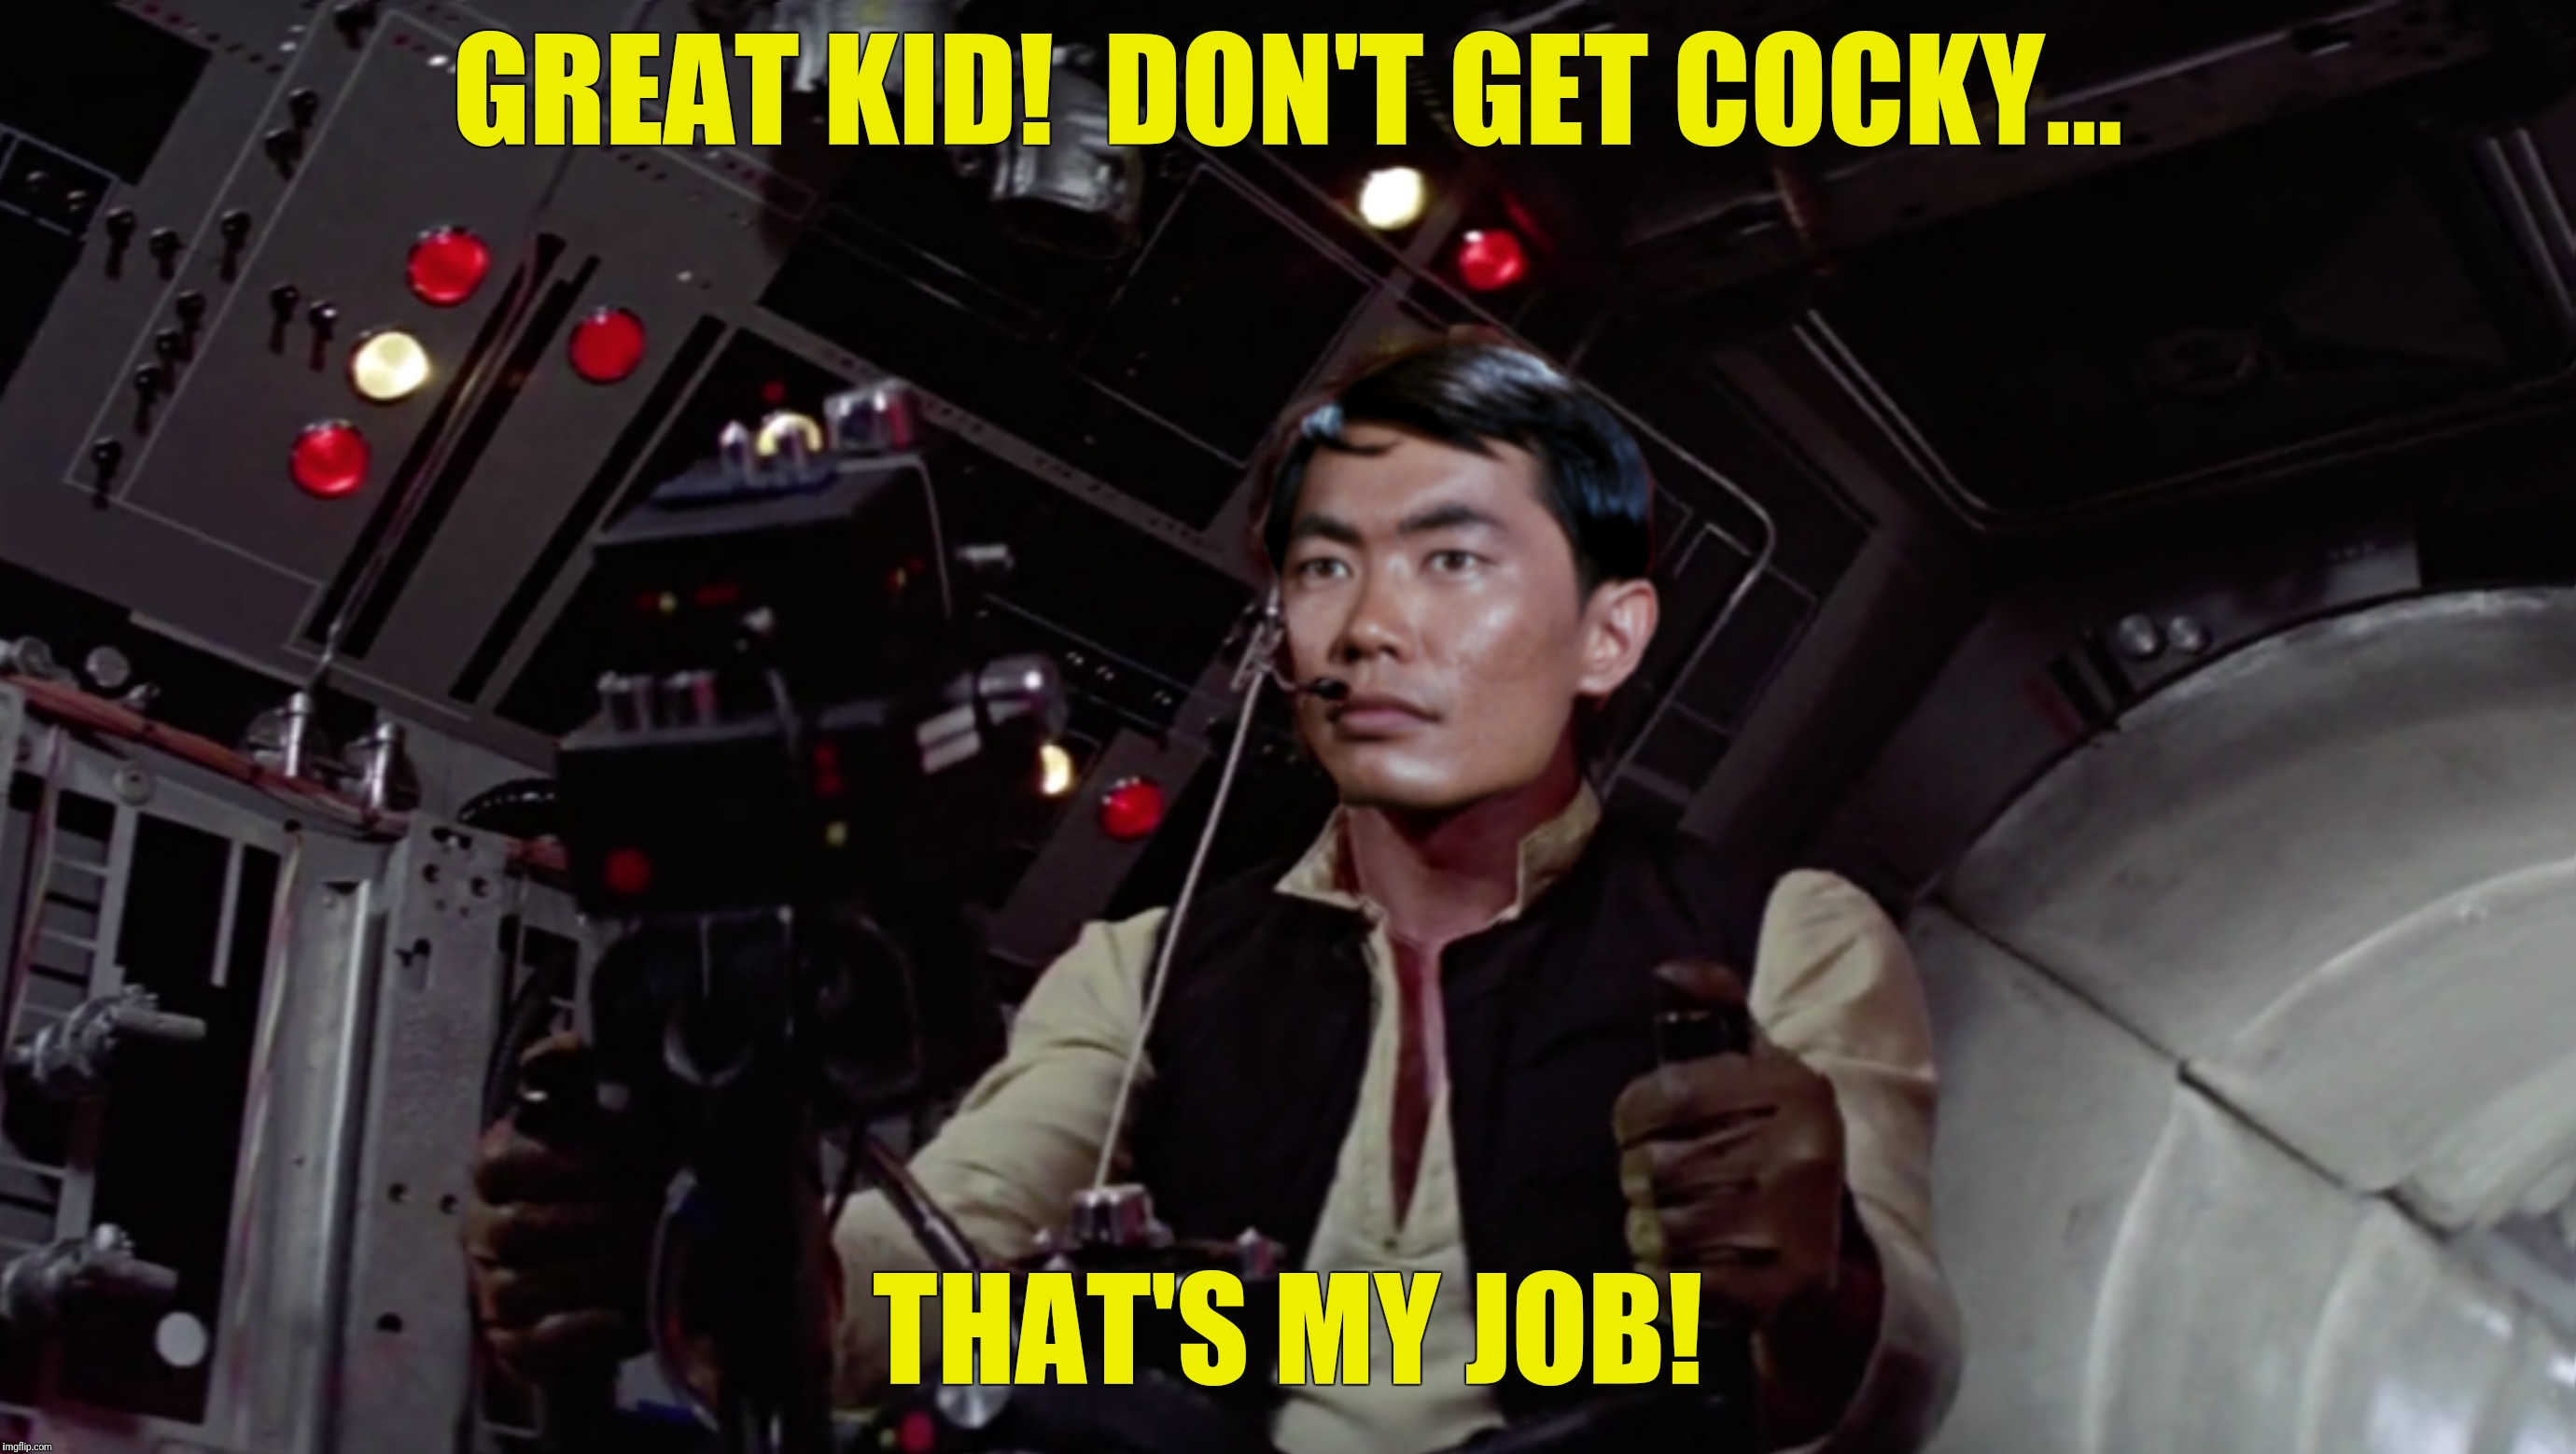 Bad Photoshop Sunday presents:  Han Sulu (Oh my!) | GREAT KID!  DON'T GET COCKY... THAT'S MY JOB! | image tagged in bad photoshop sunday,han solo,sulu,star wars,star trek | made w/ Imgflip meme maker